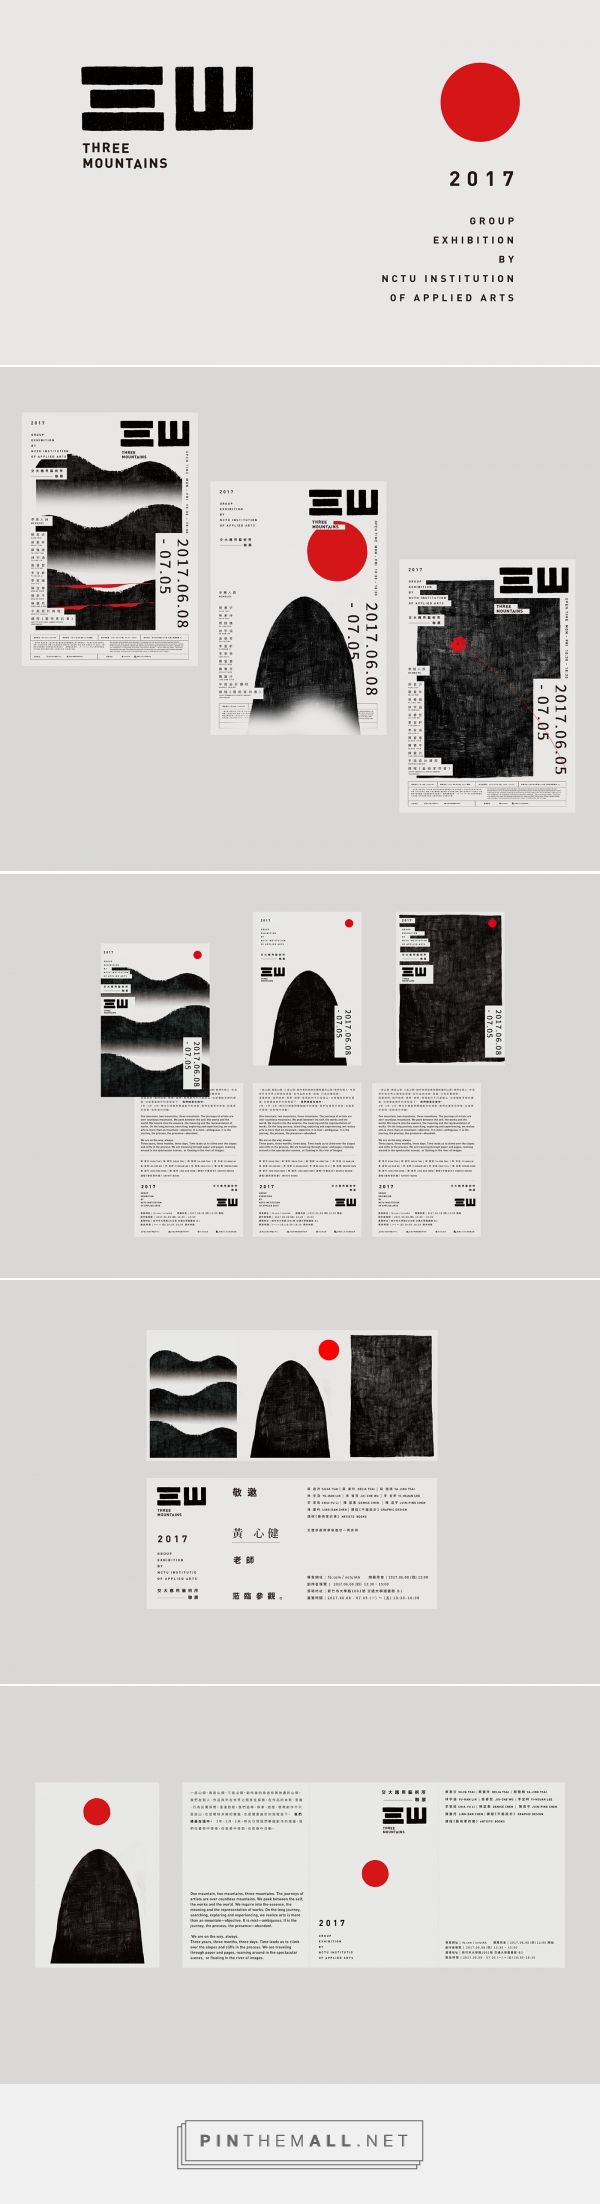 #print #poster #design © Yi-Hsuan Li / Studio Pros — Three Mountains